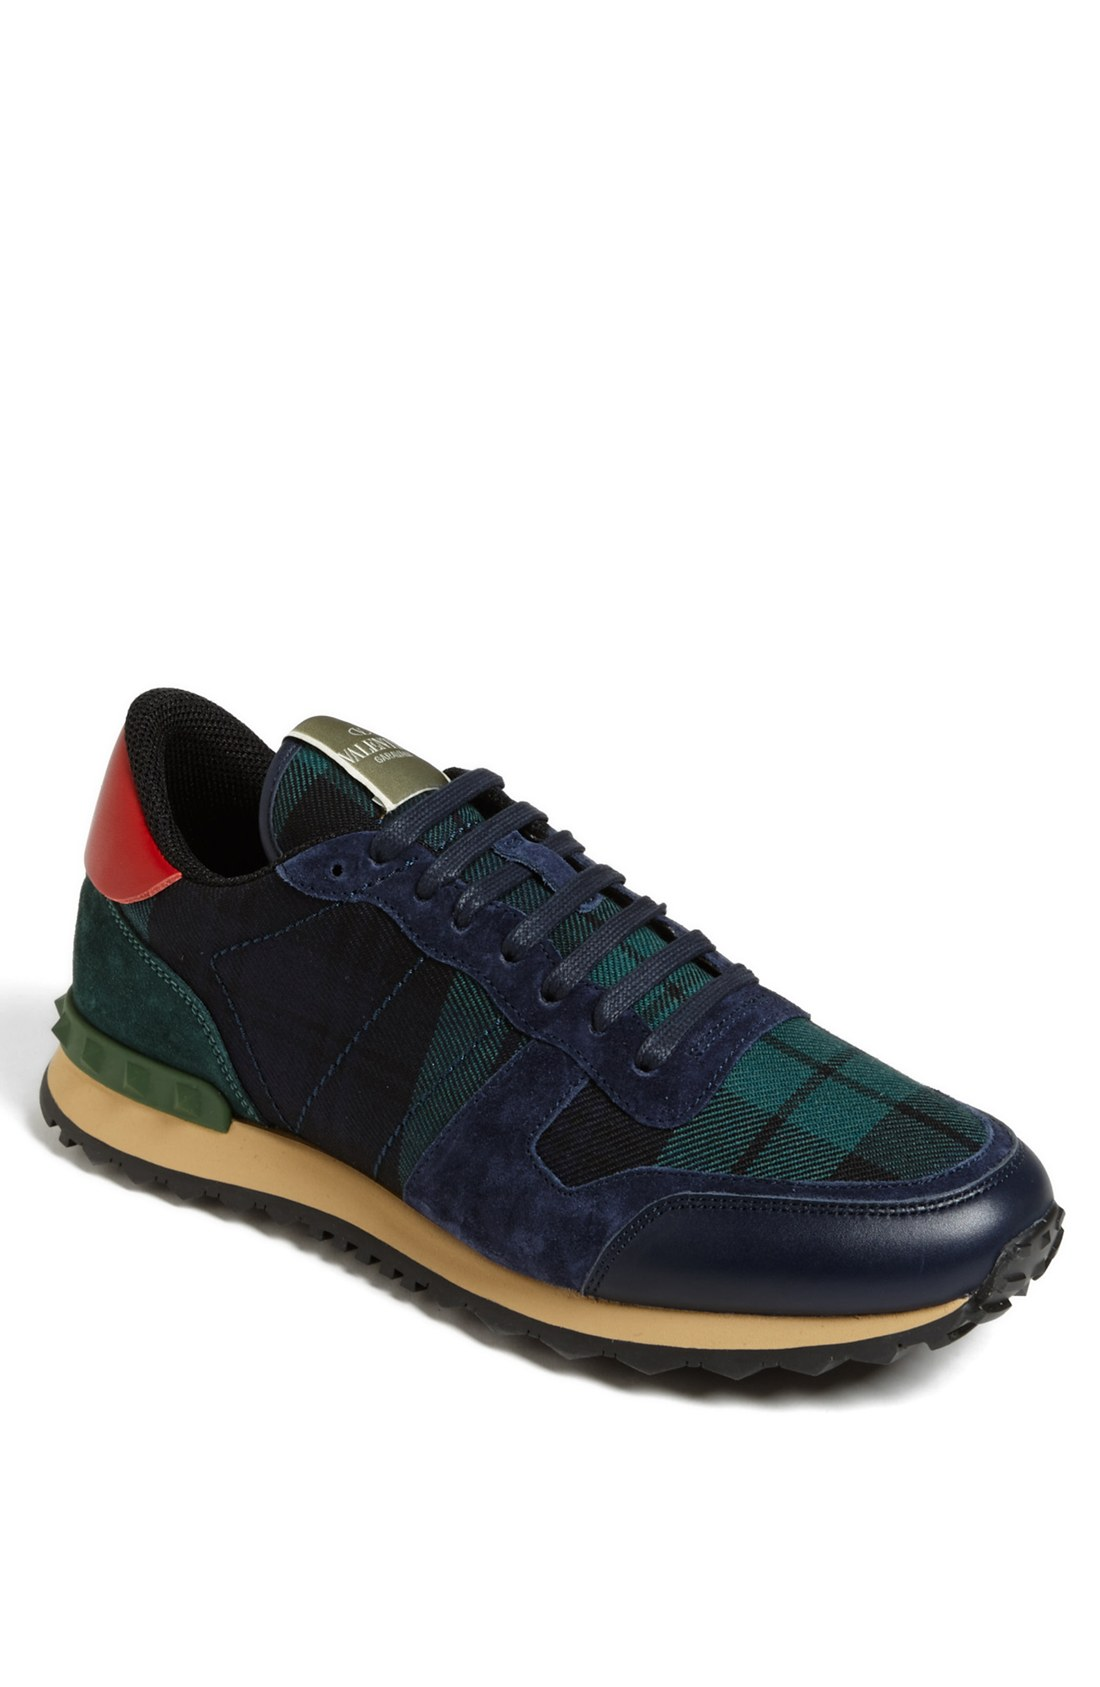 valentino camouflage sneaker in blue for men marine lyst. Black Bedroom Furniture Sets. Home Design Ideas